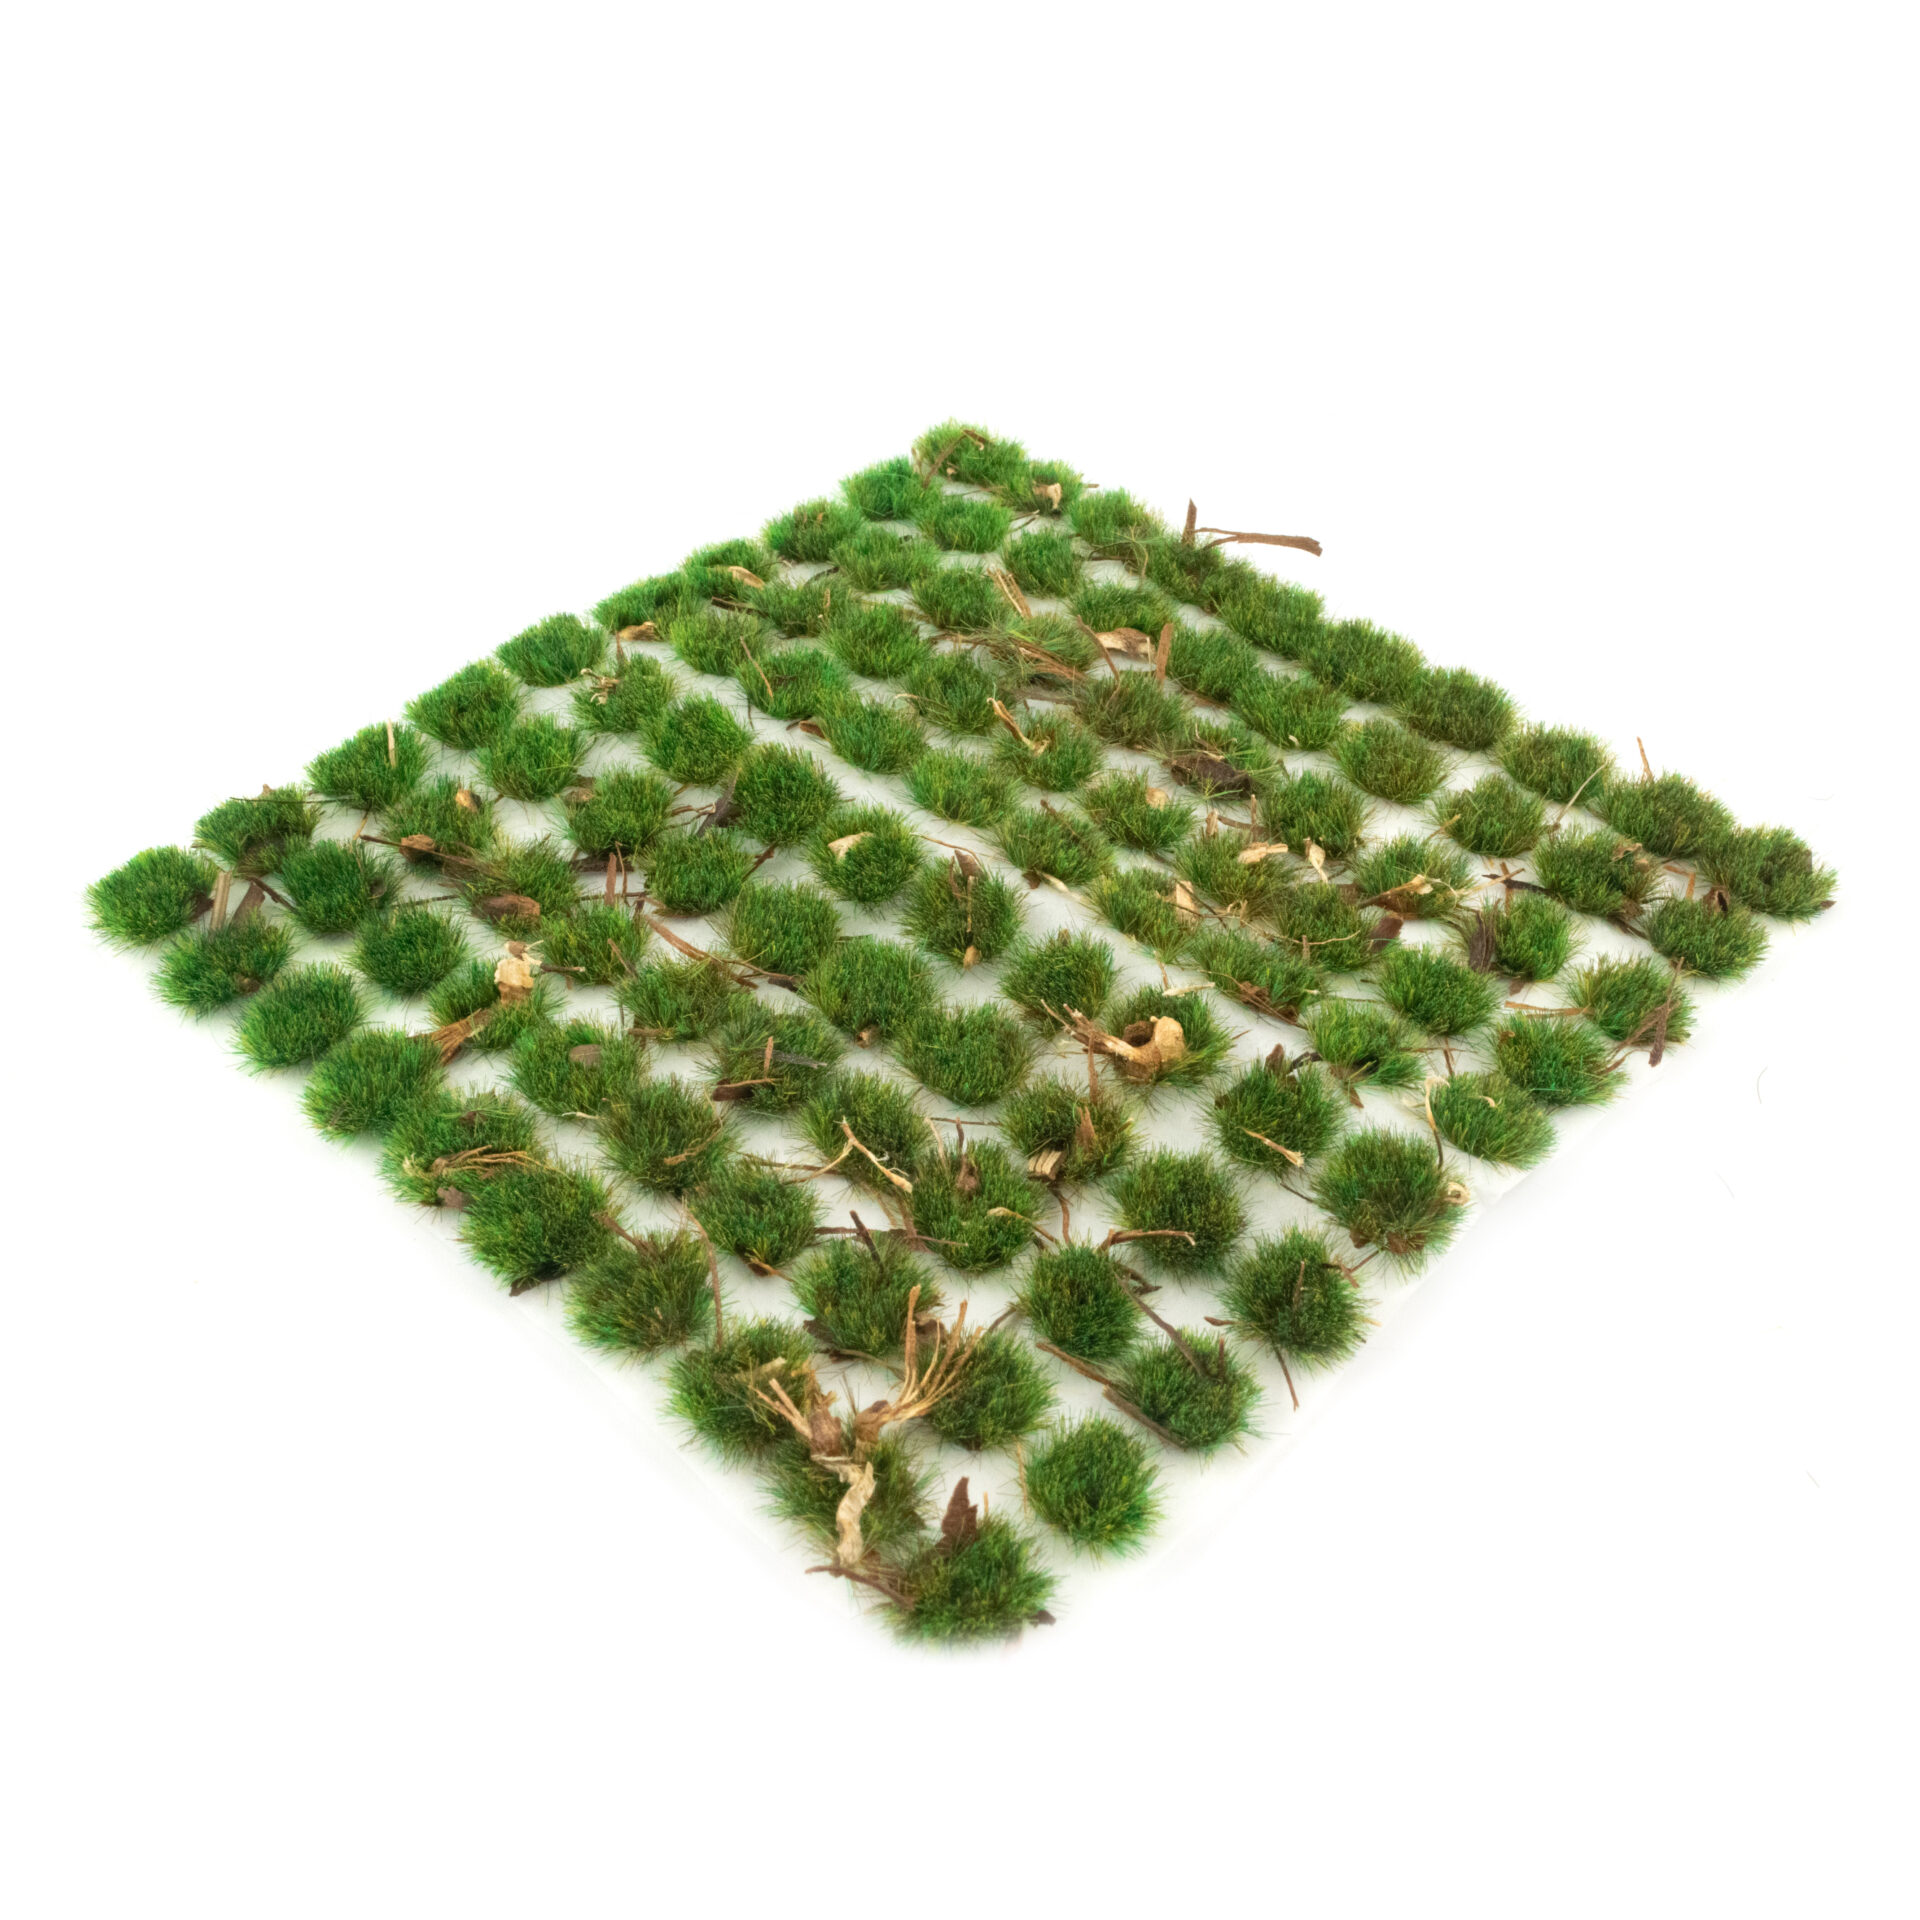 Forest Ground Cover 4mm Static Grass Tufts 2